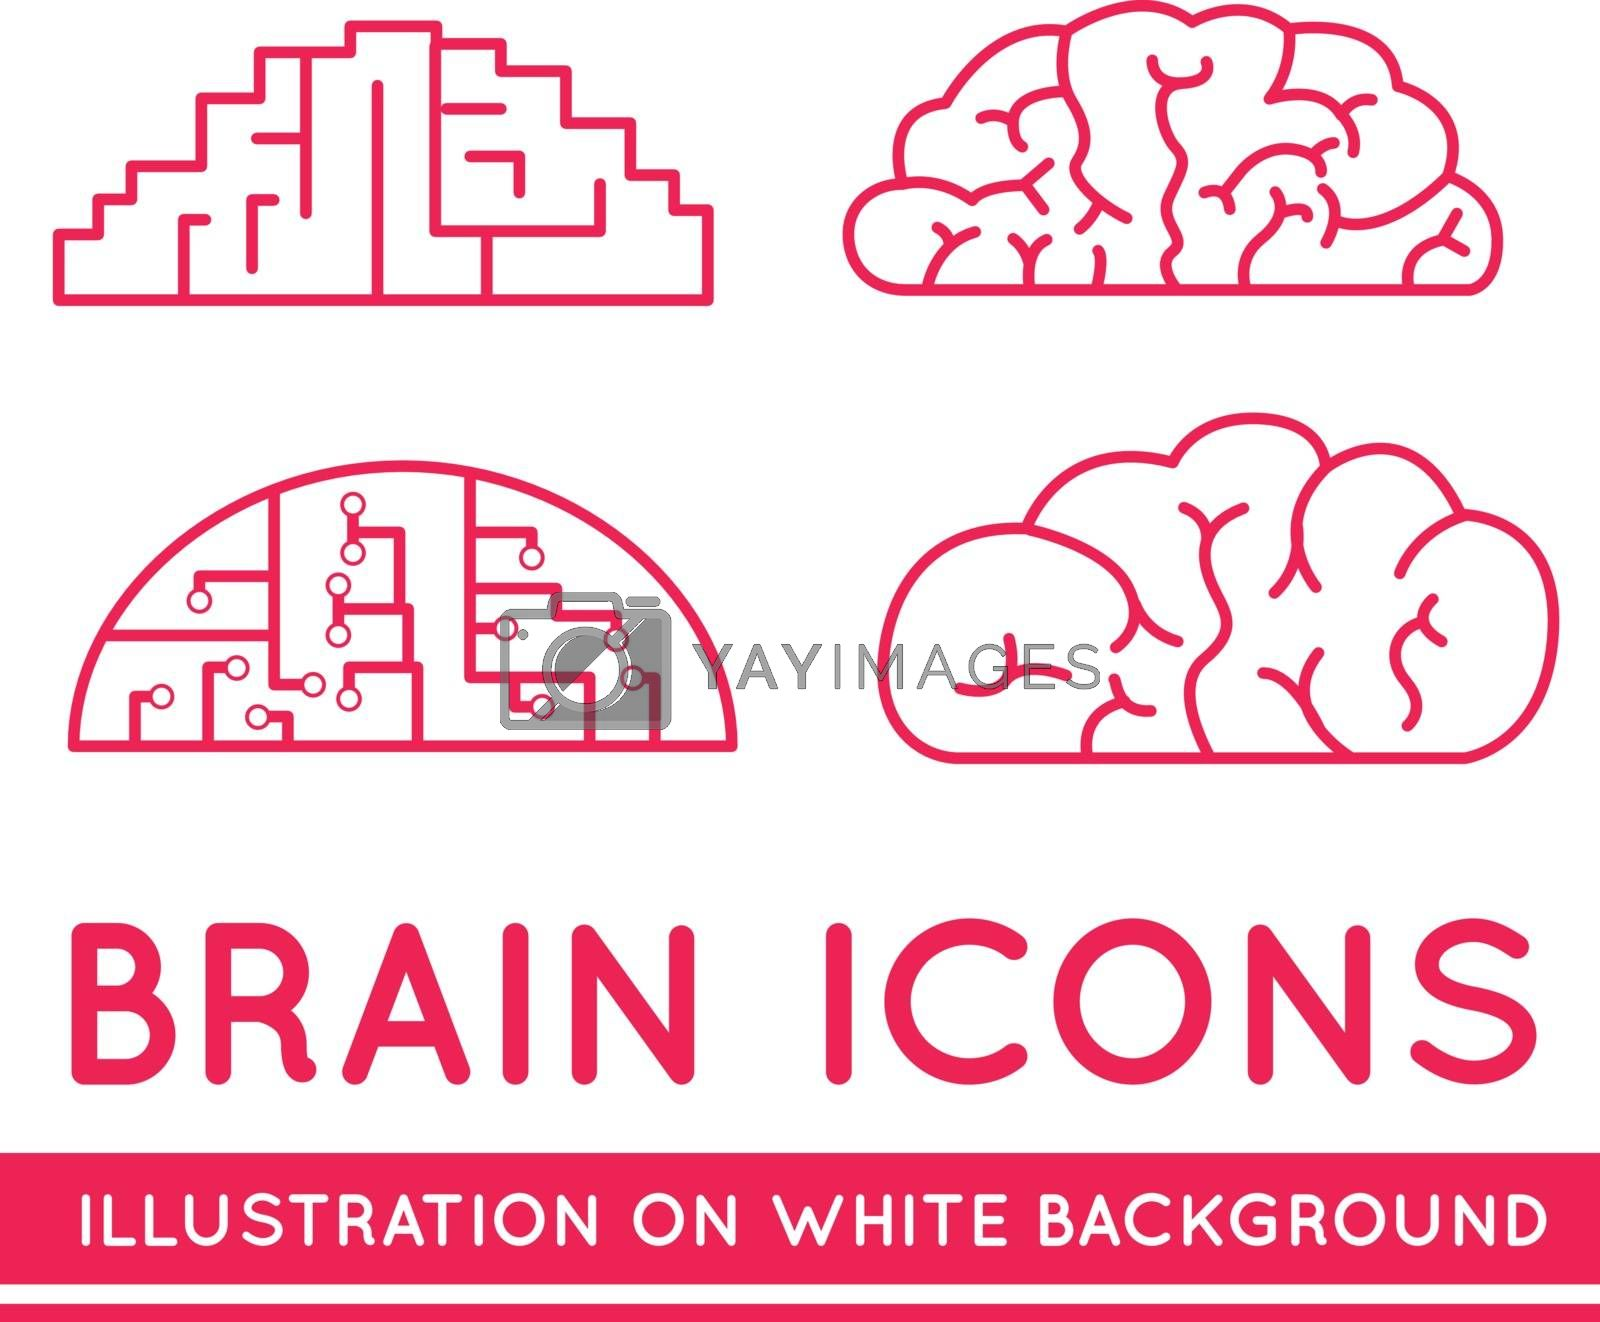 Icons of brains in different styles. Vector illustration on white background